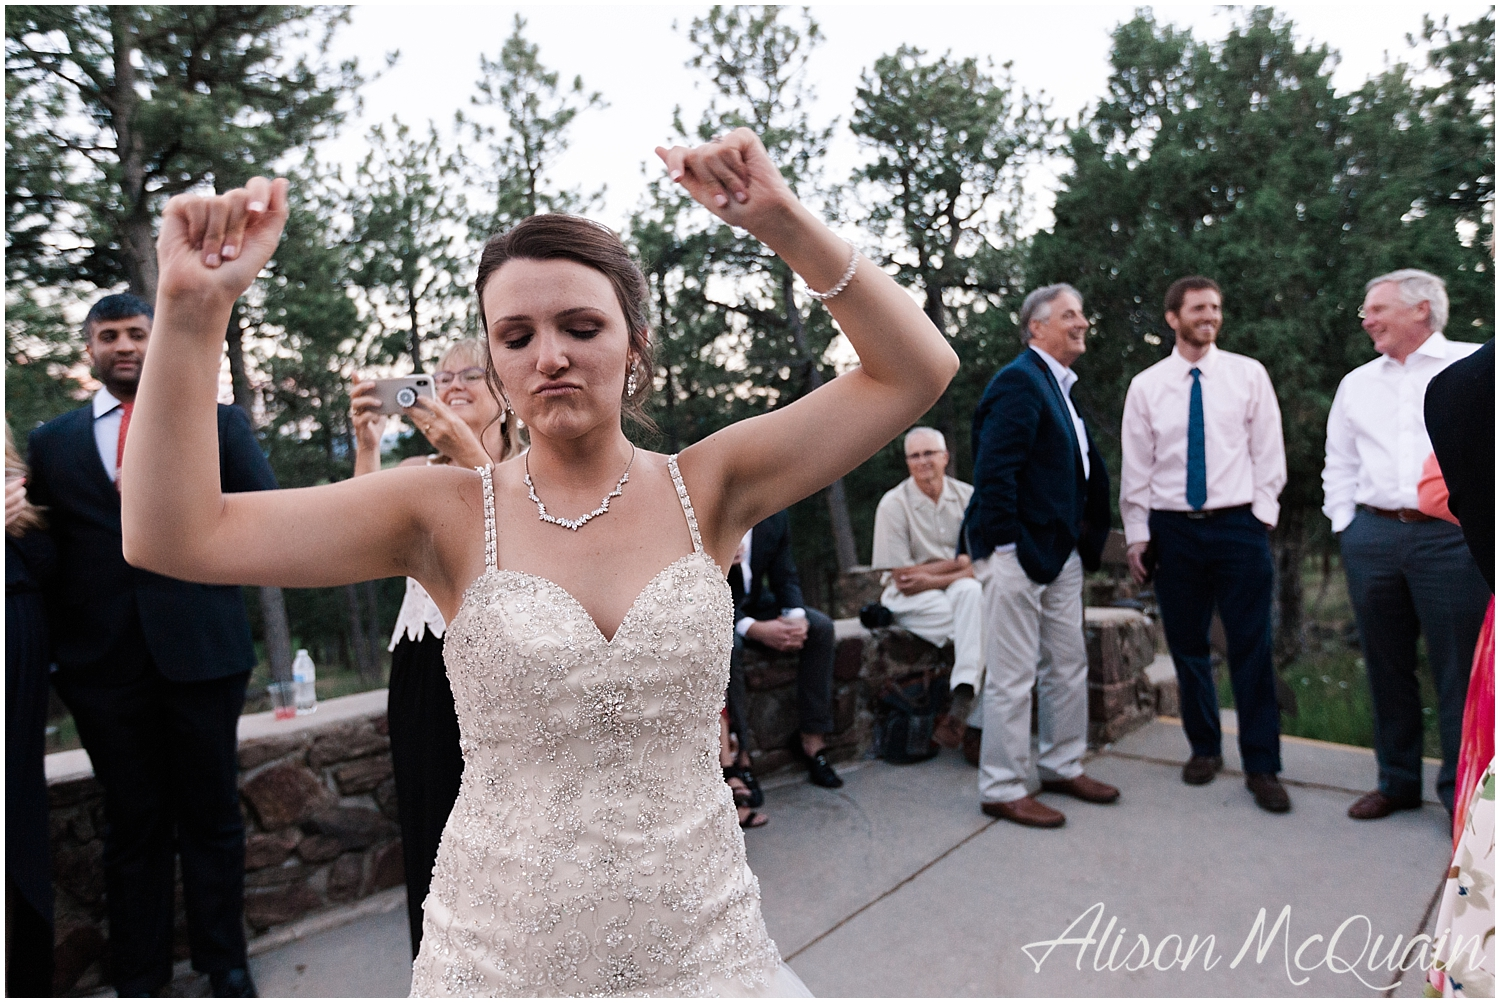 AandJ_Wedding_BoettcherMansion_Golden_Colorado_6_2018_AMP_0046.jpg